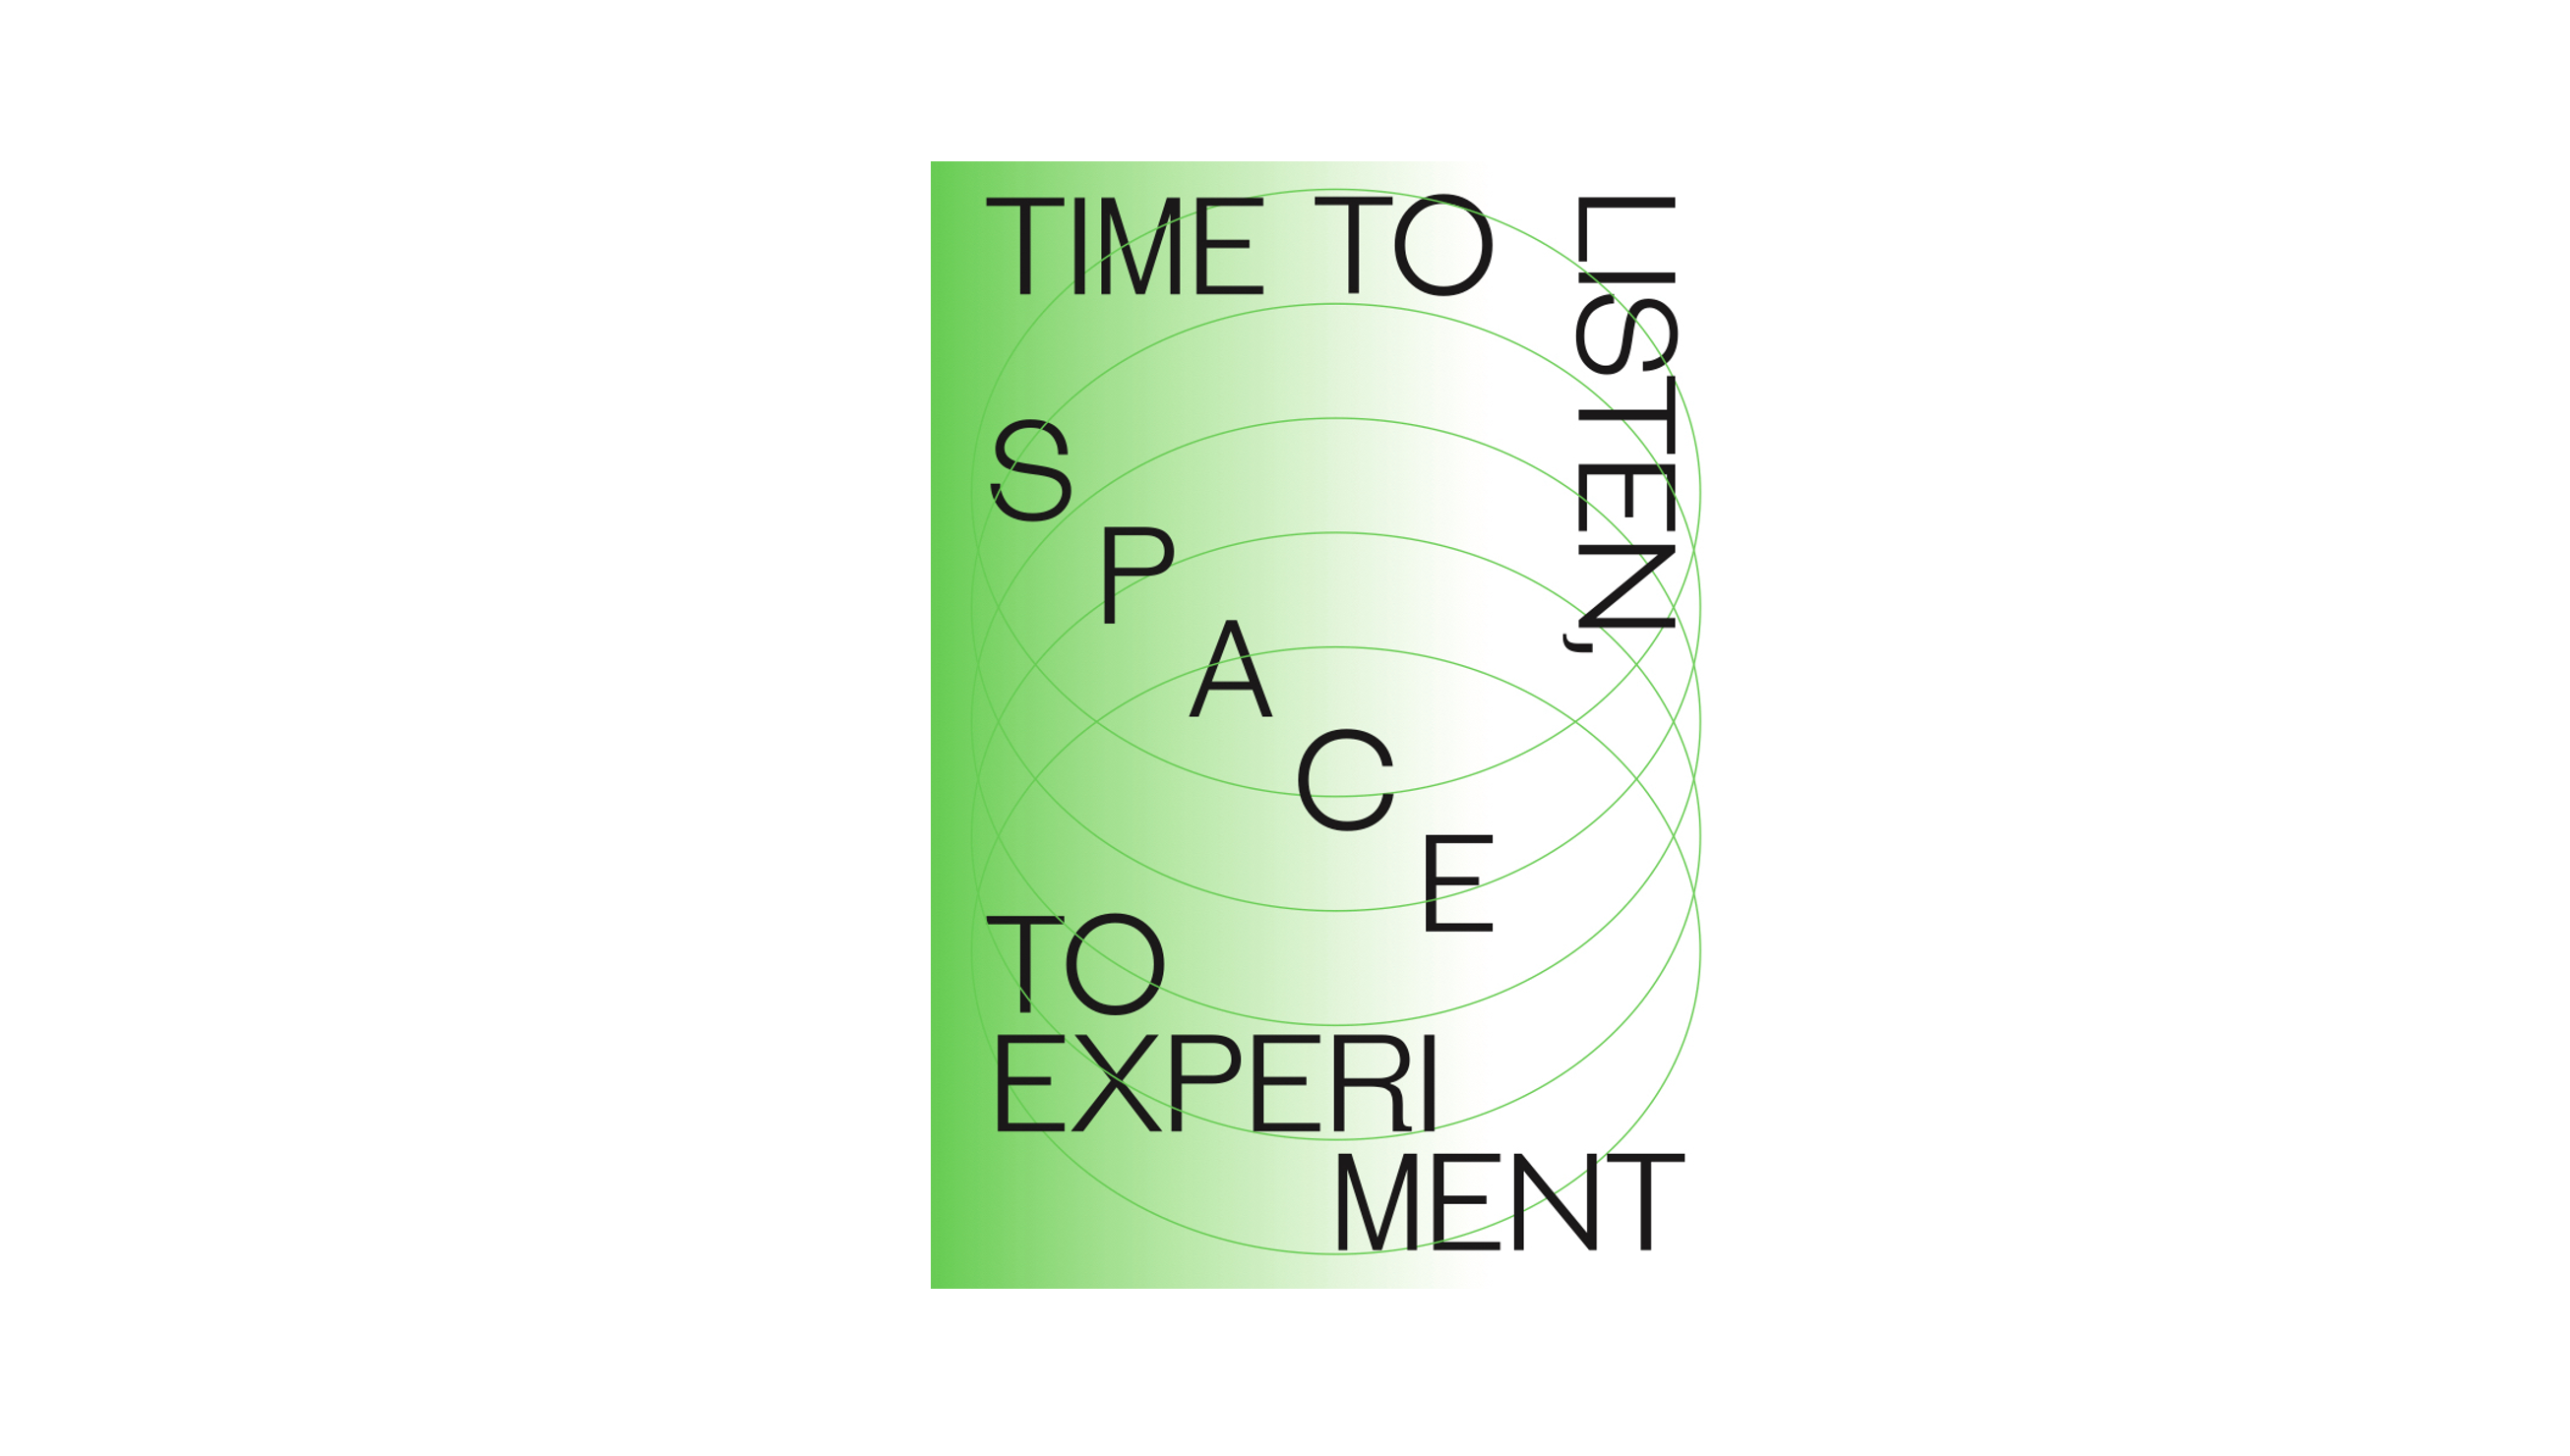 Publication: Time To Listen, Space To Experiment